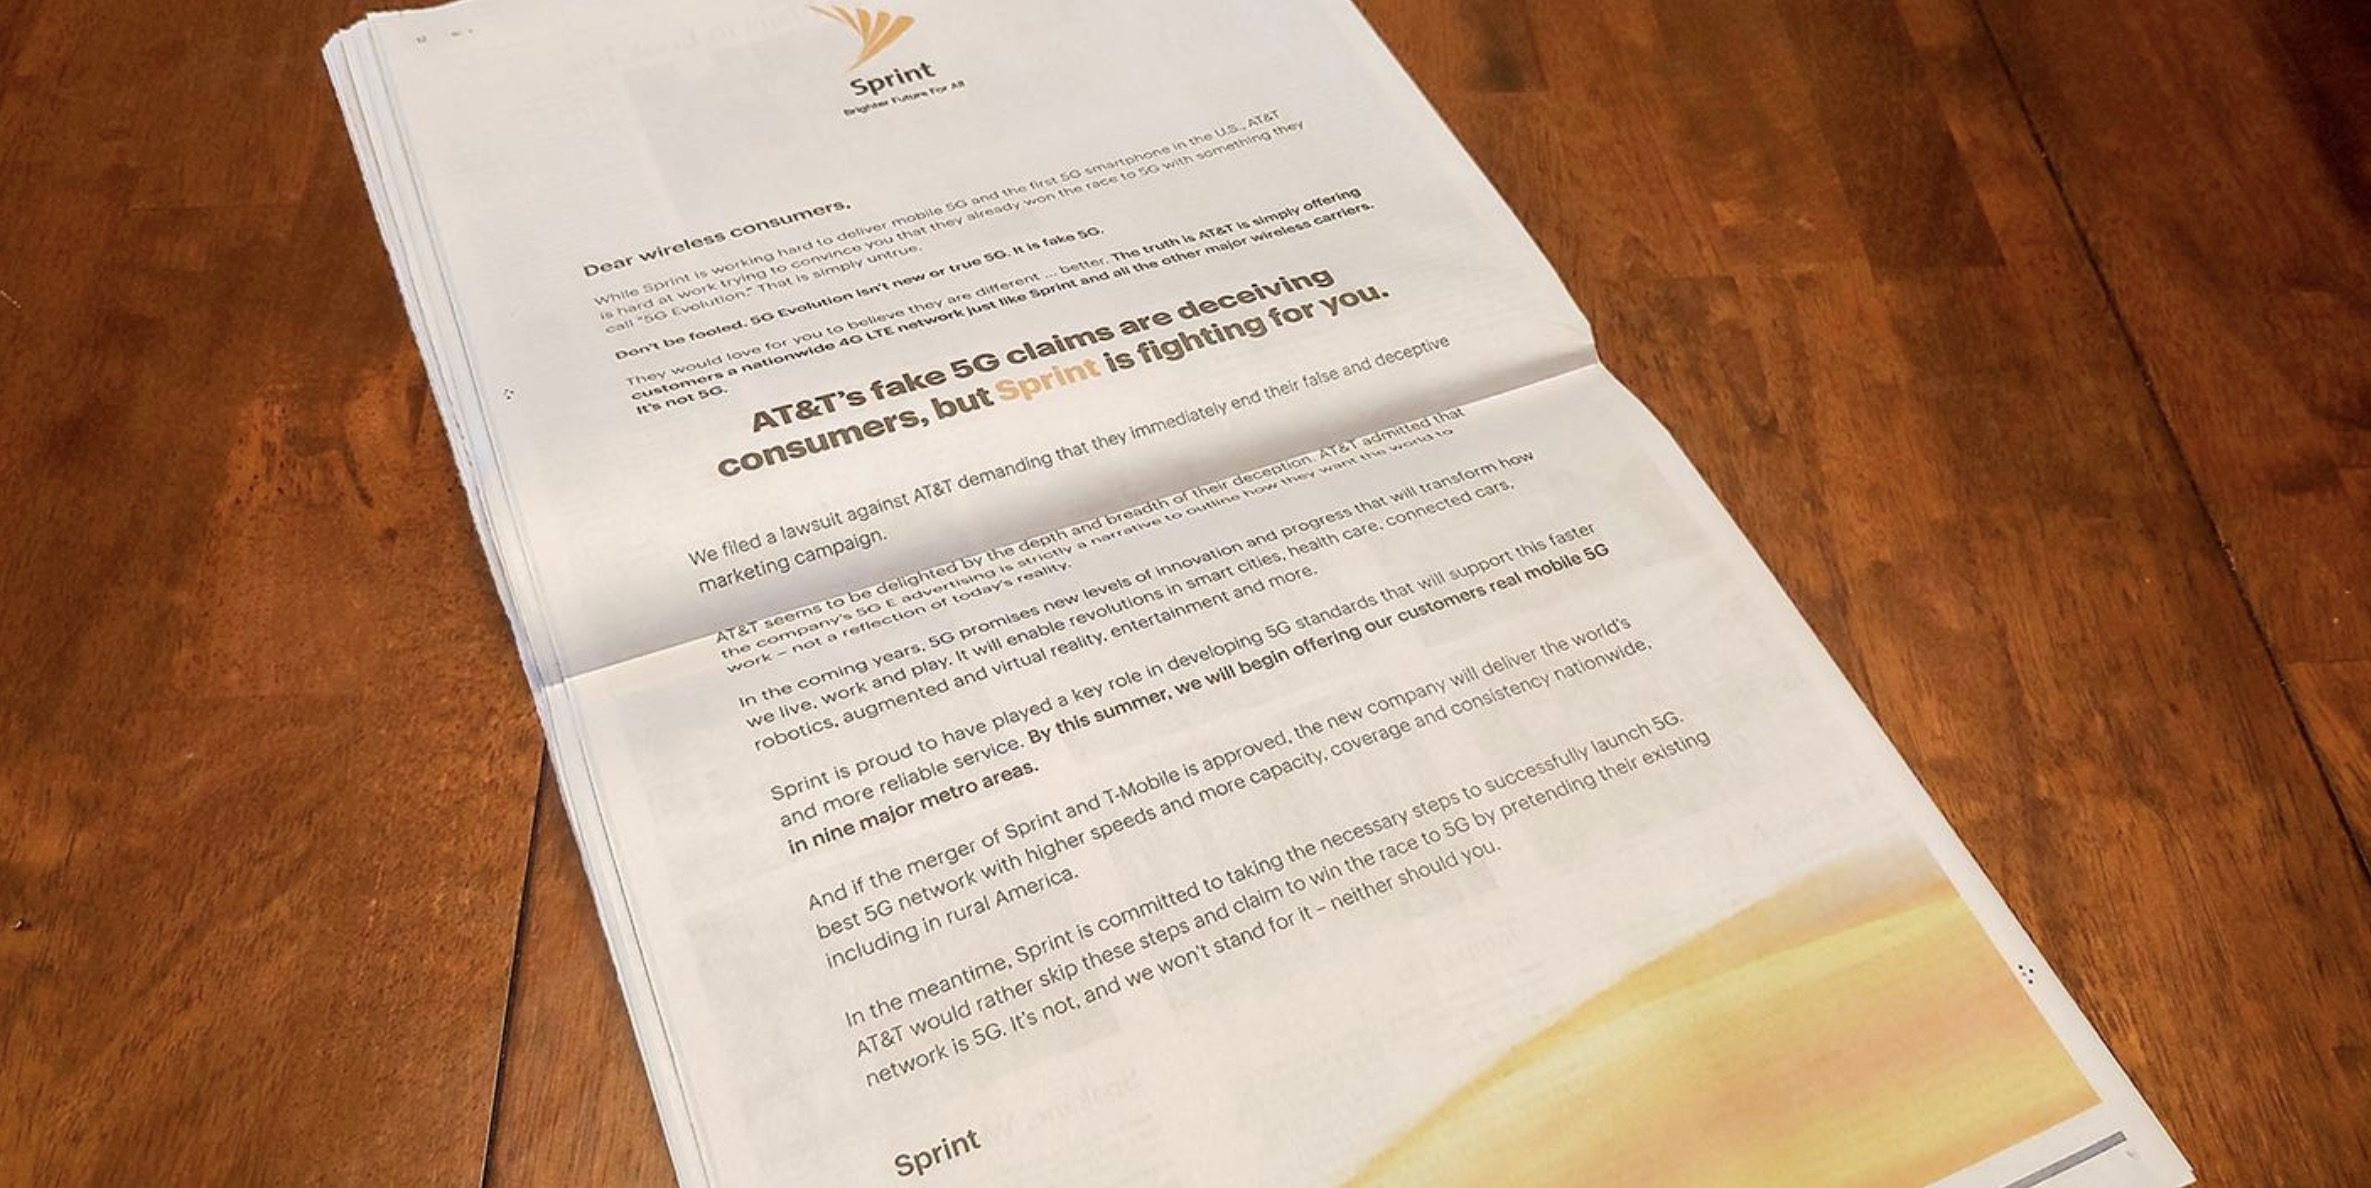 Sprint's open letter to consumers.